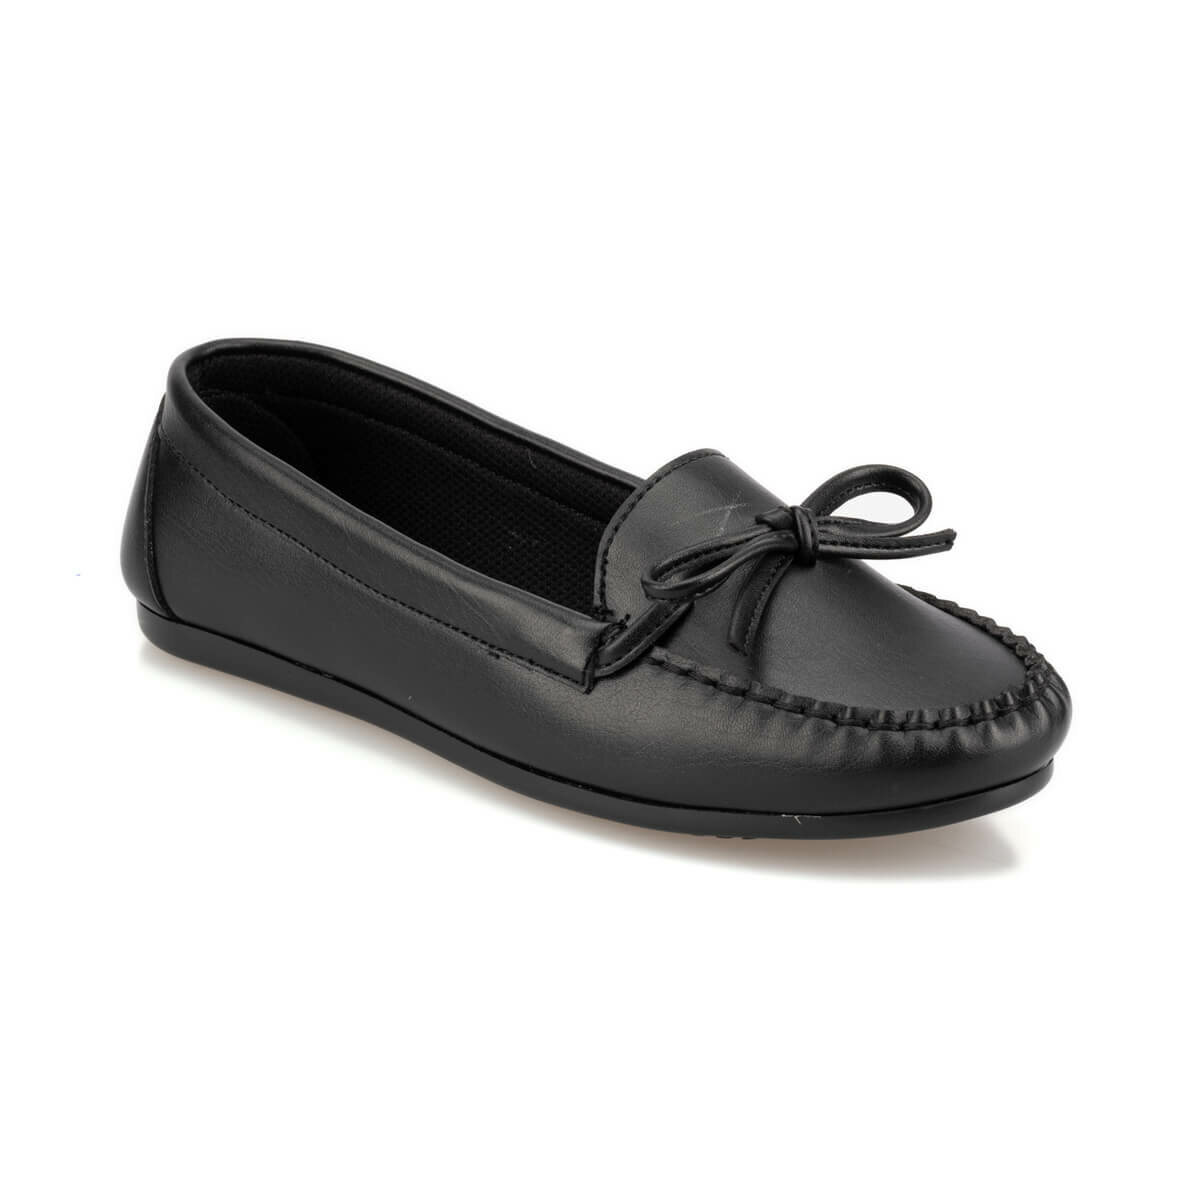 FLO 92. 314011.Z Black Women Loafer Shoes Polaris